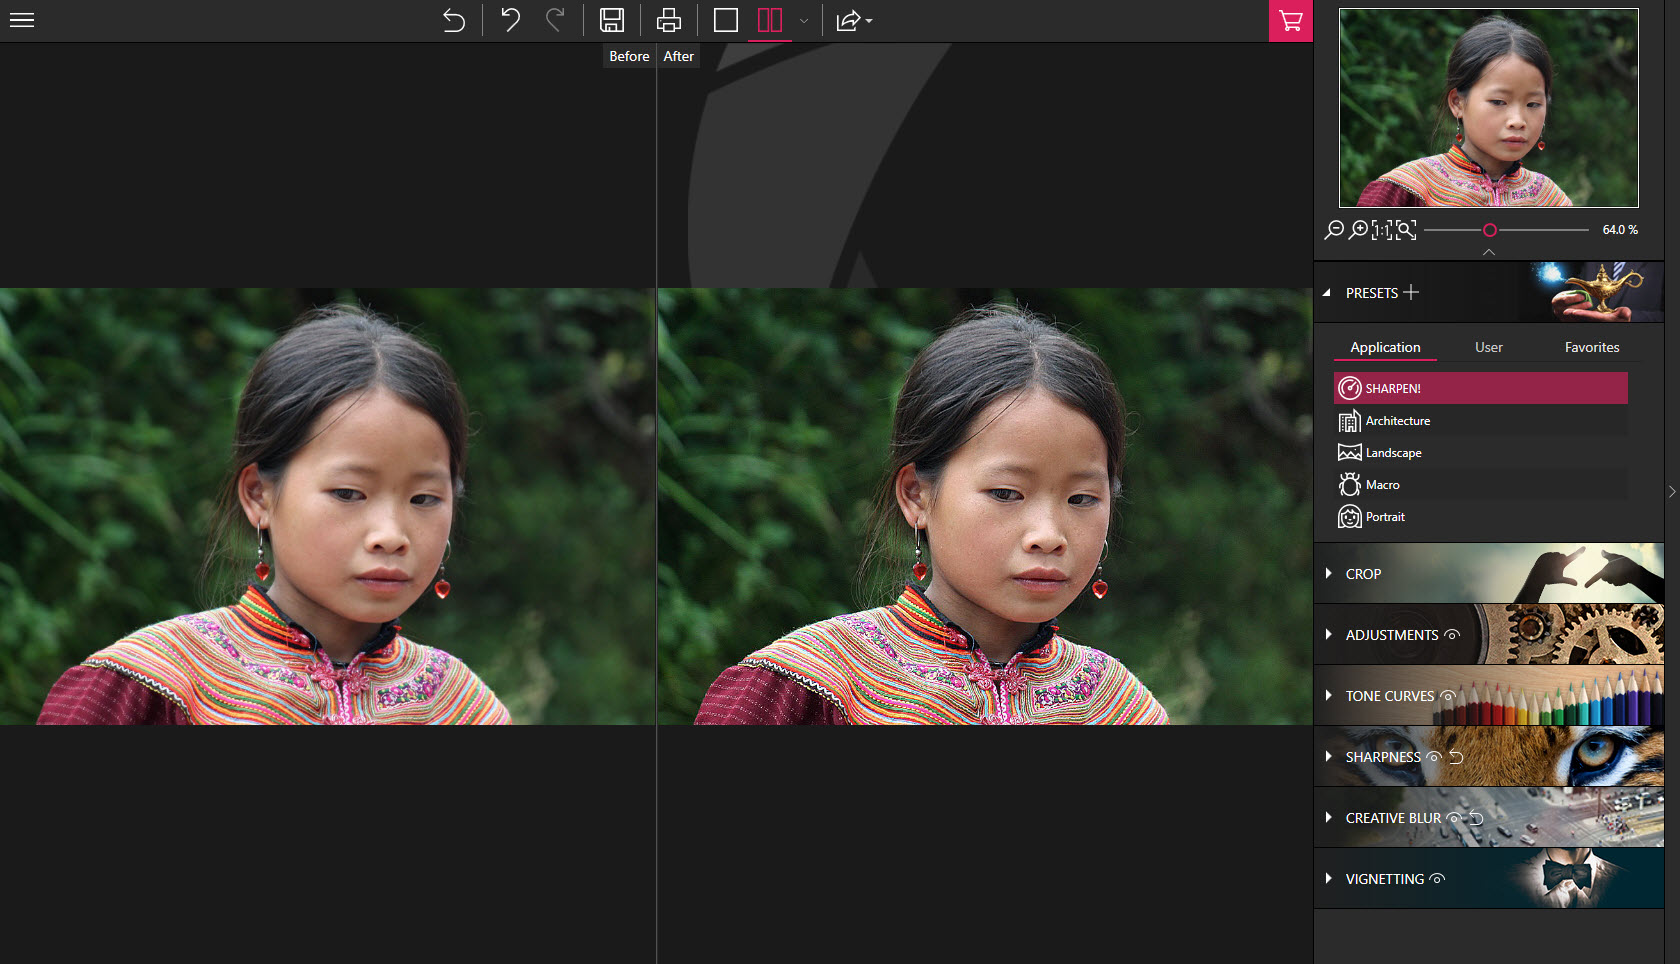 sharpness, oval frames, vignetting, impressive effects, high-resolution images